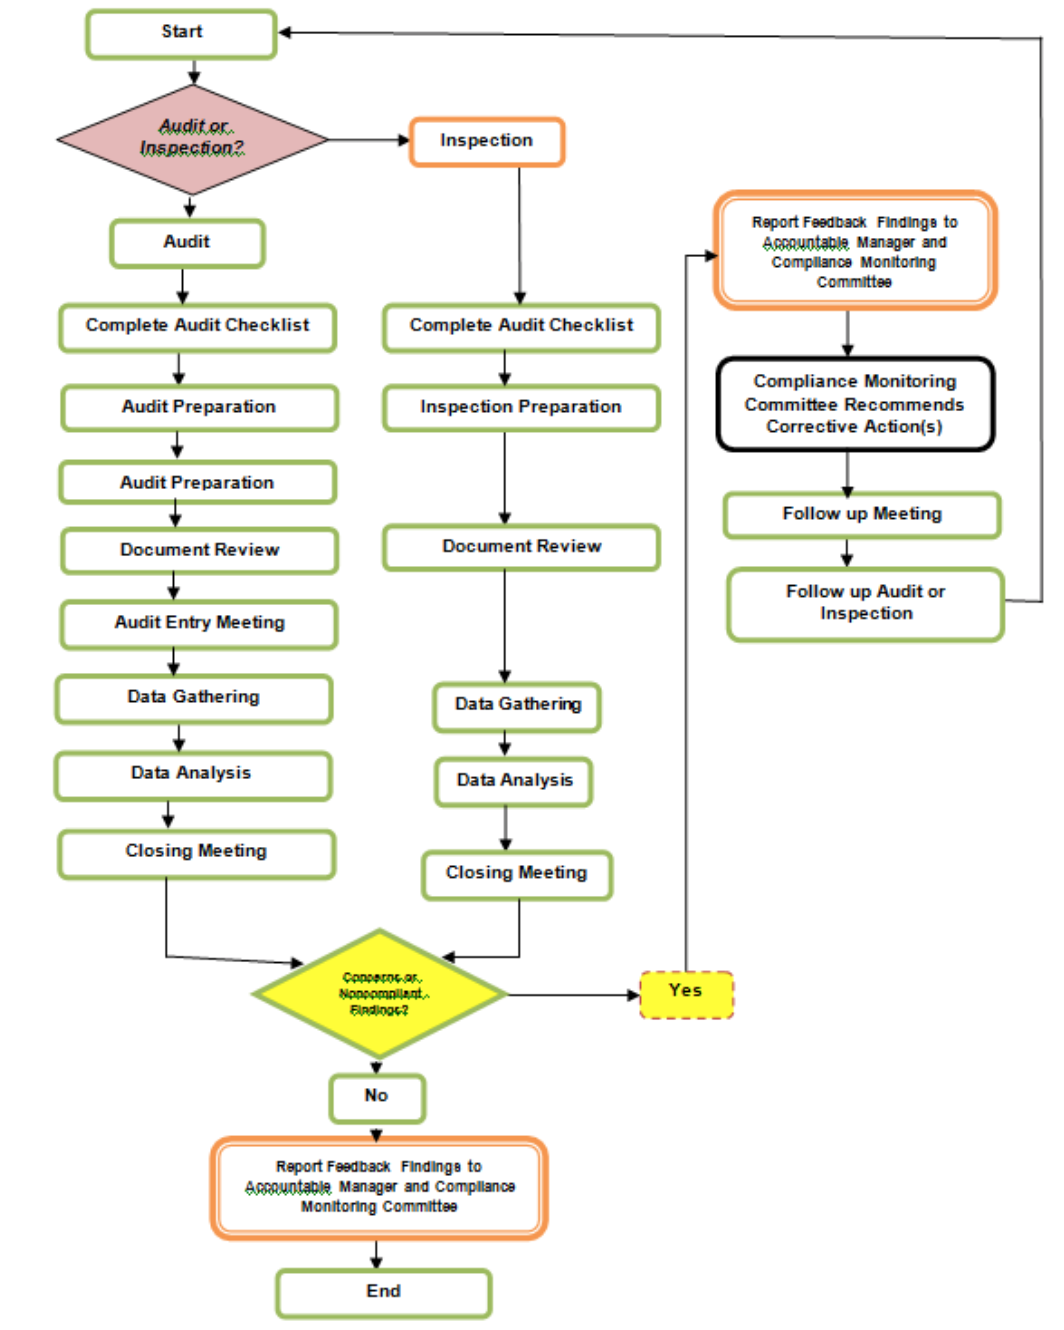 audit_or_inspection_process - Documentation Review Process